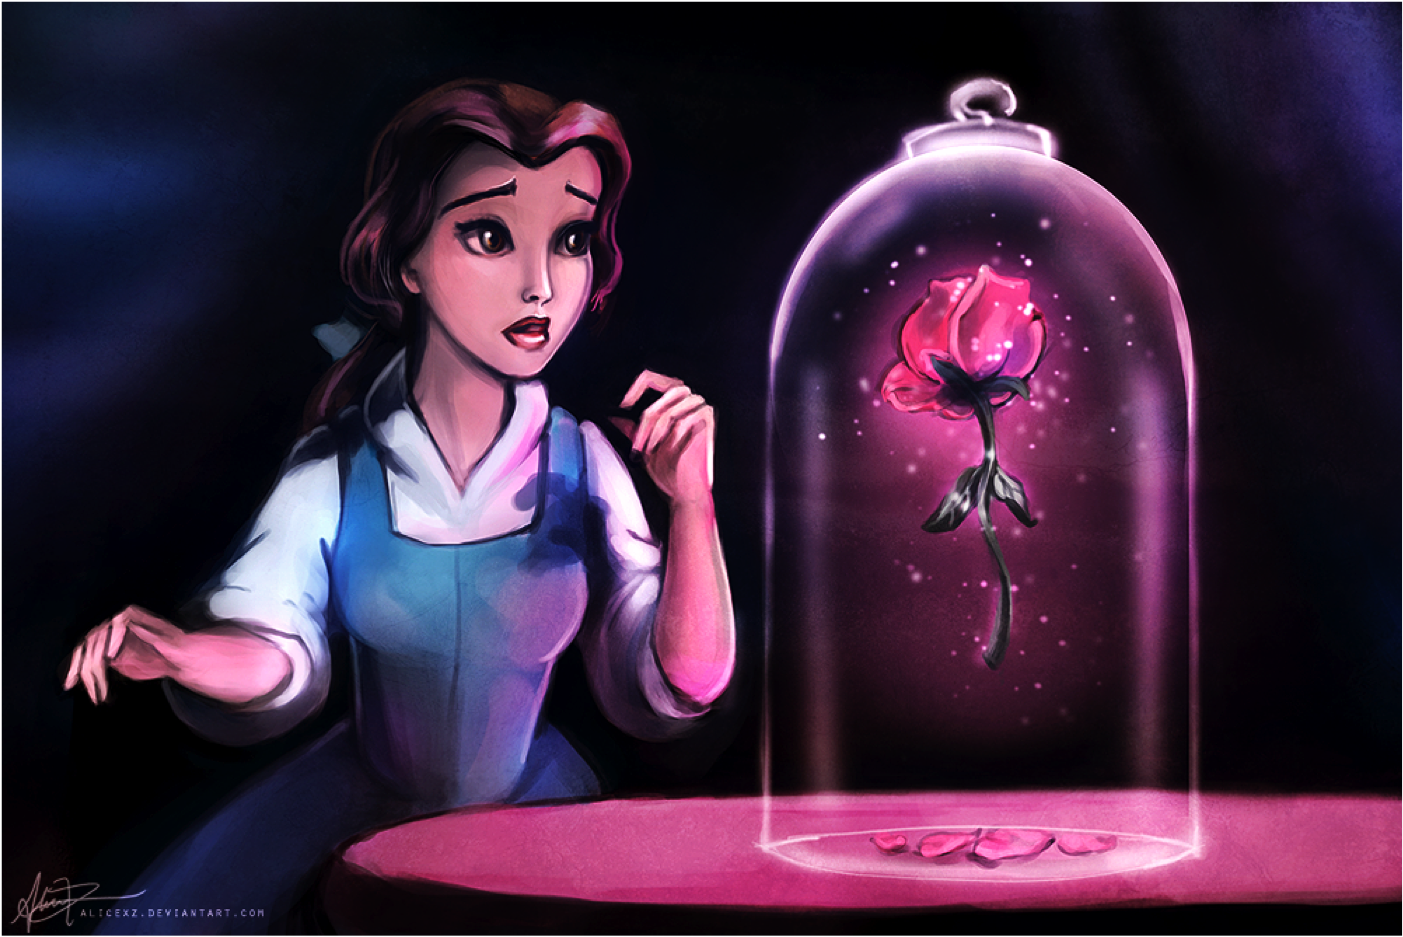 Quotes From Beauty And The Beast About The Rose Disney Princess images...